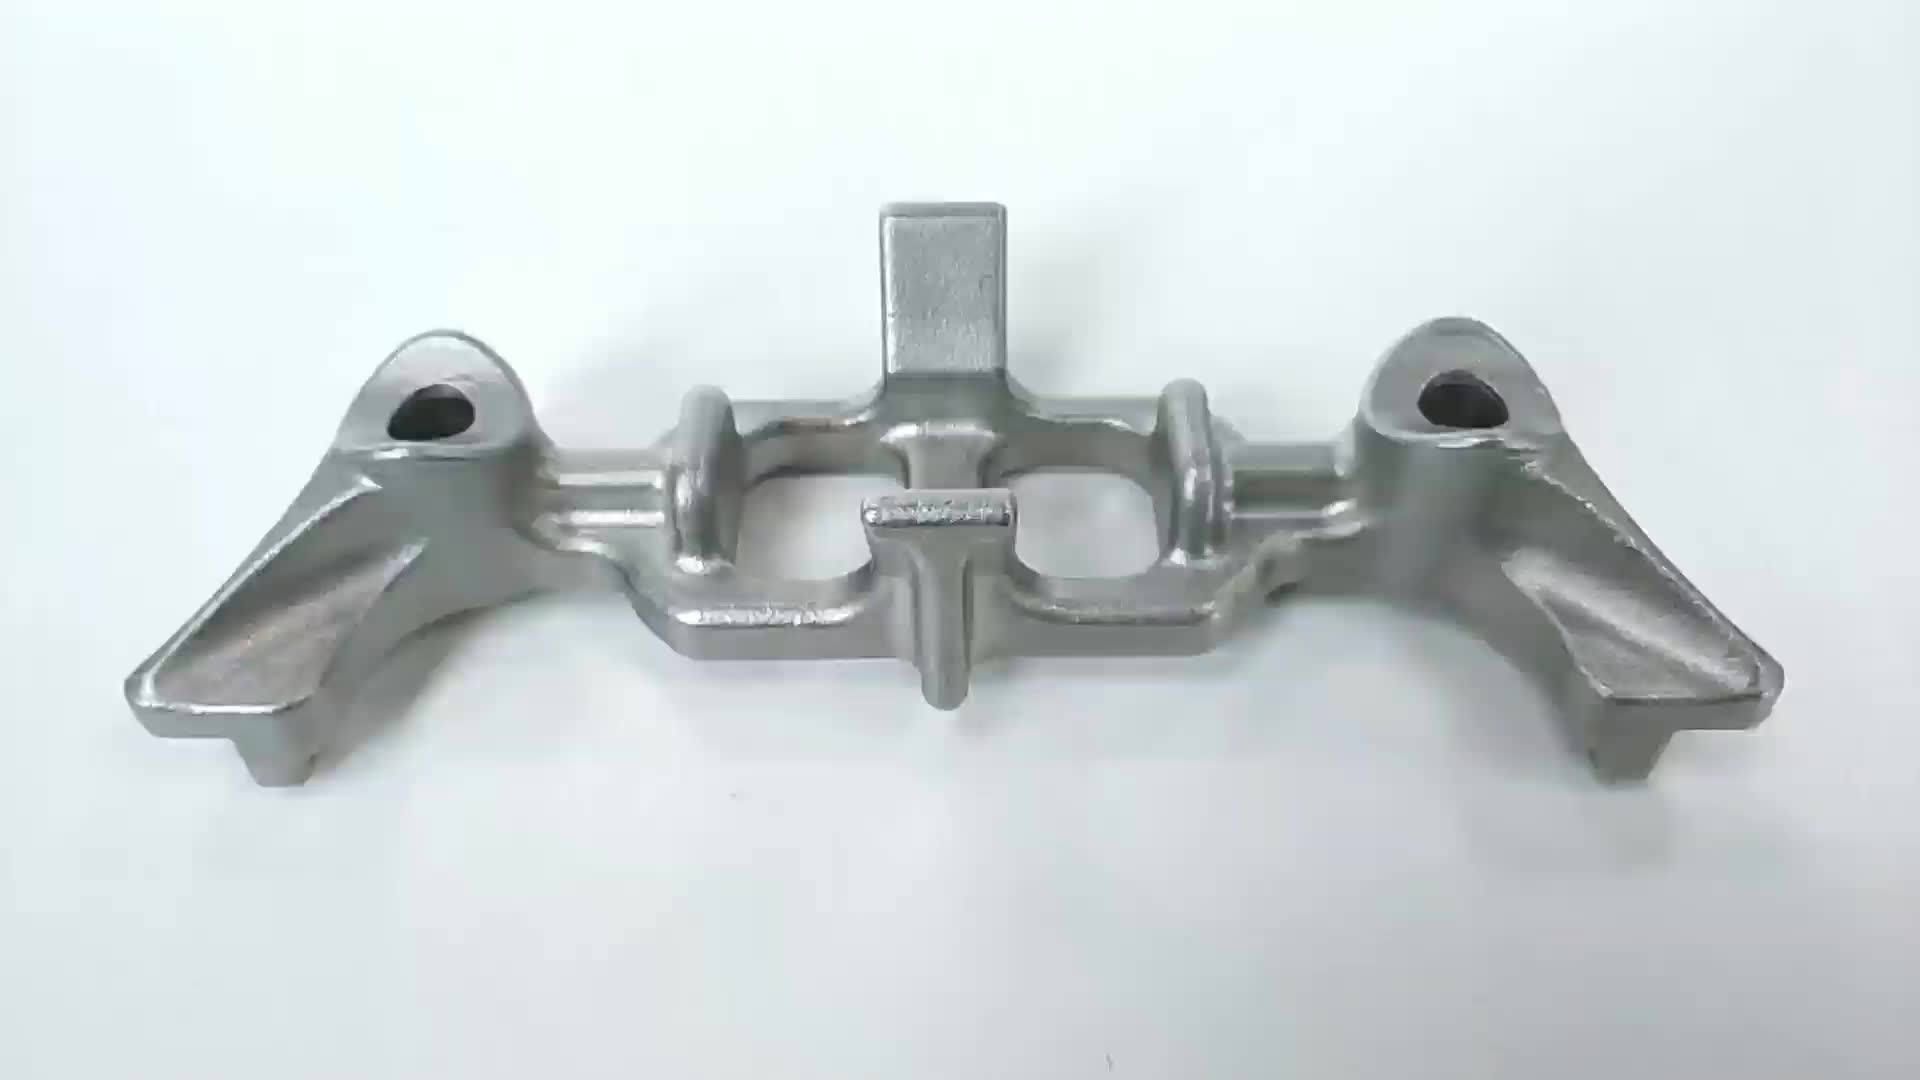 SUS 304 lost wax investment casting cf8 stainless steel precision casting